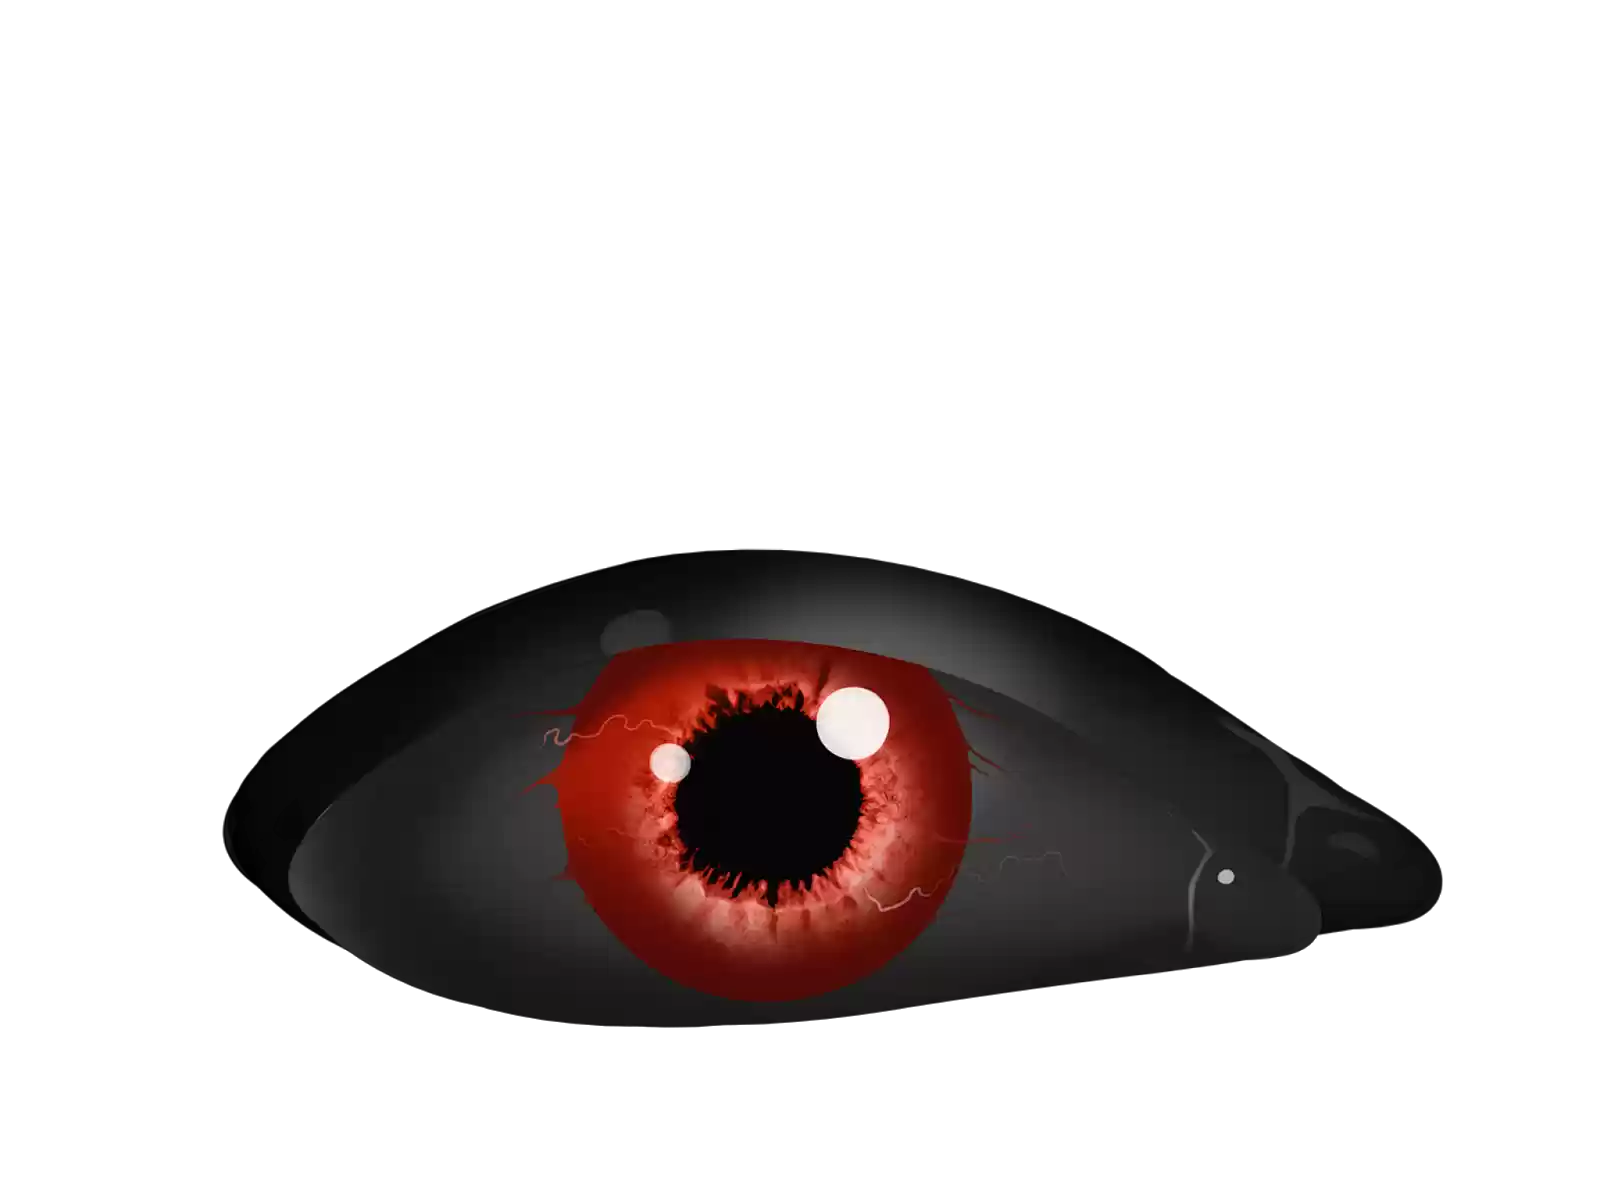 Scary Eyes Png (+).